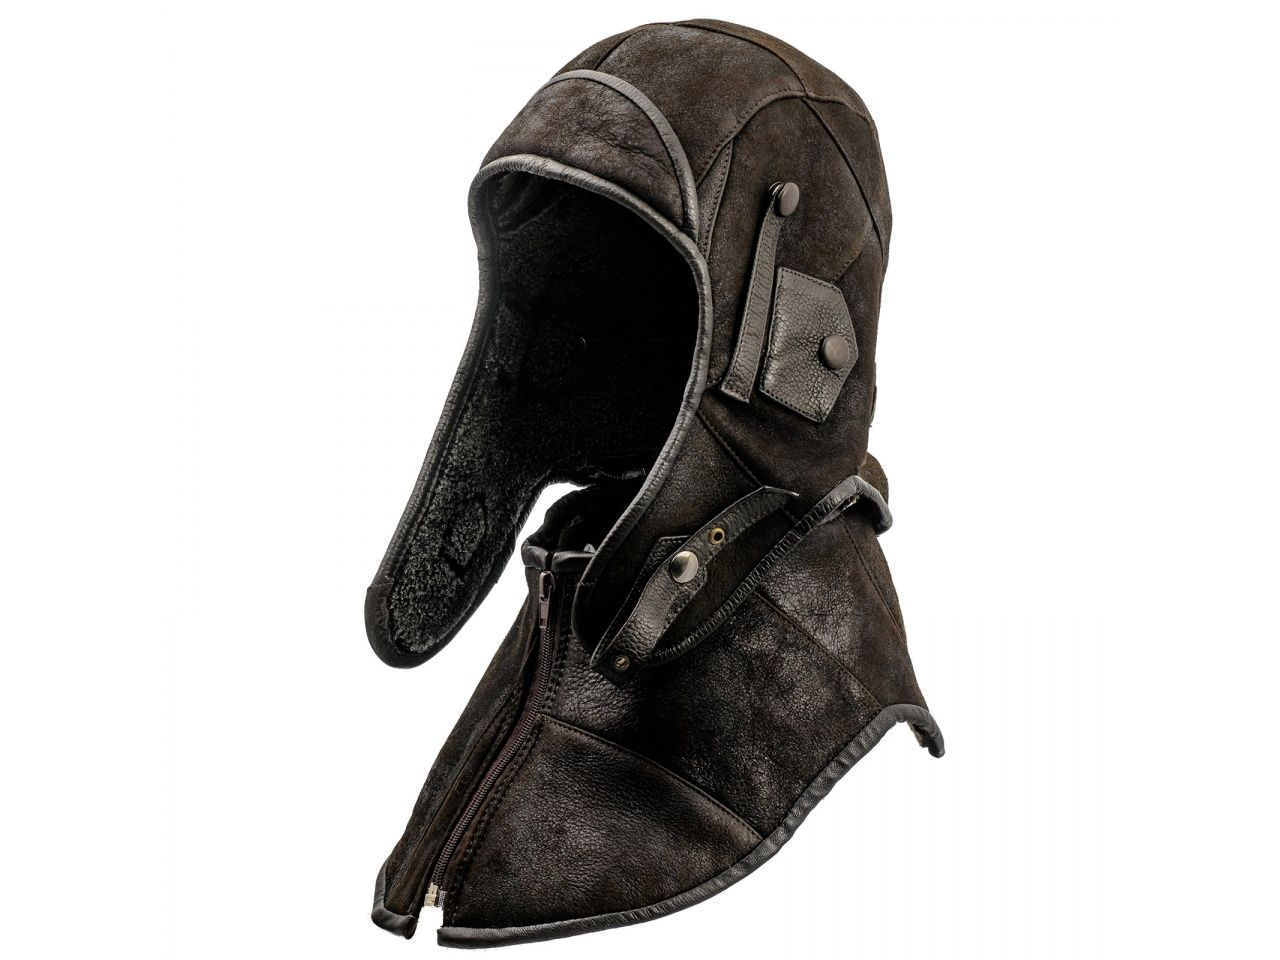 d68869067 Aviator caps made of leather for men and women - Sterkowski. | SEW ...